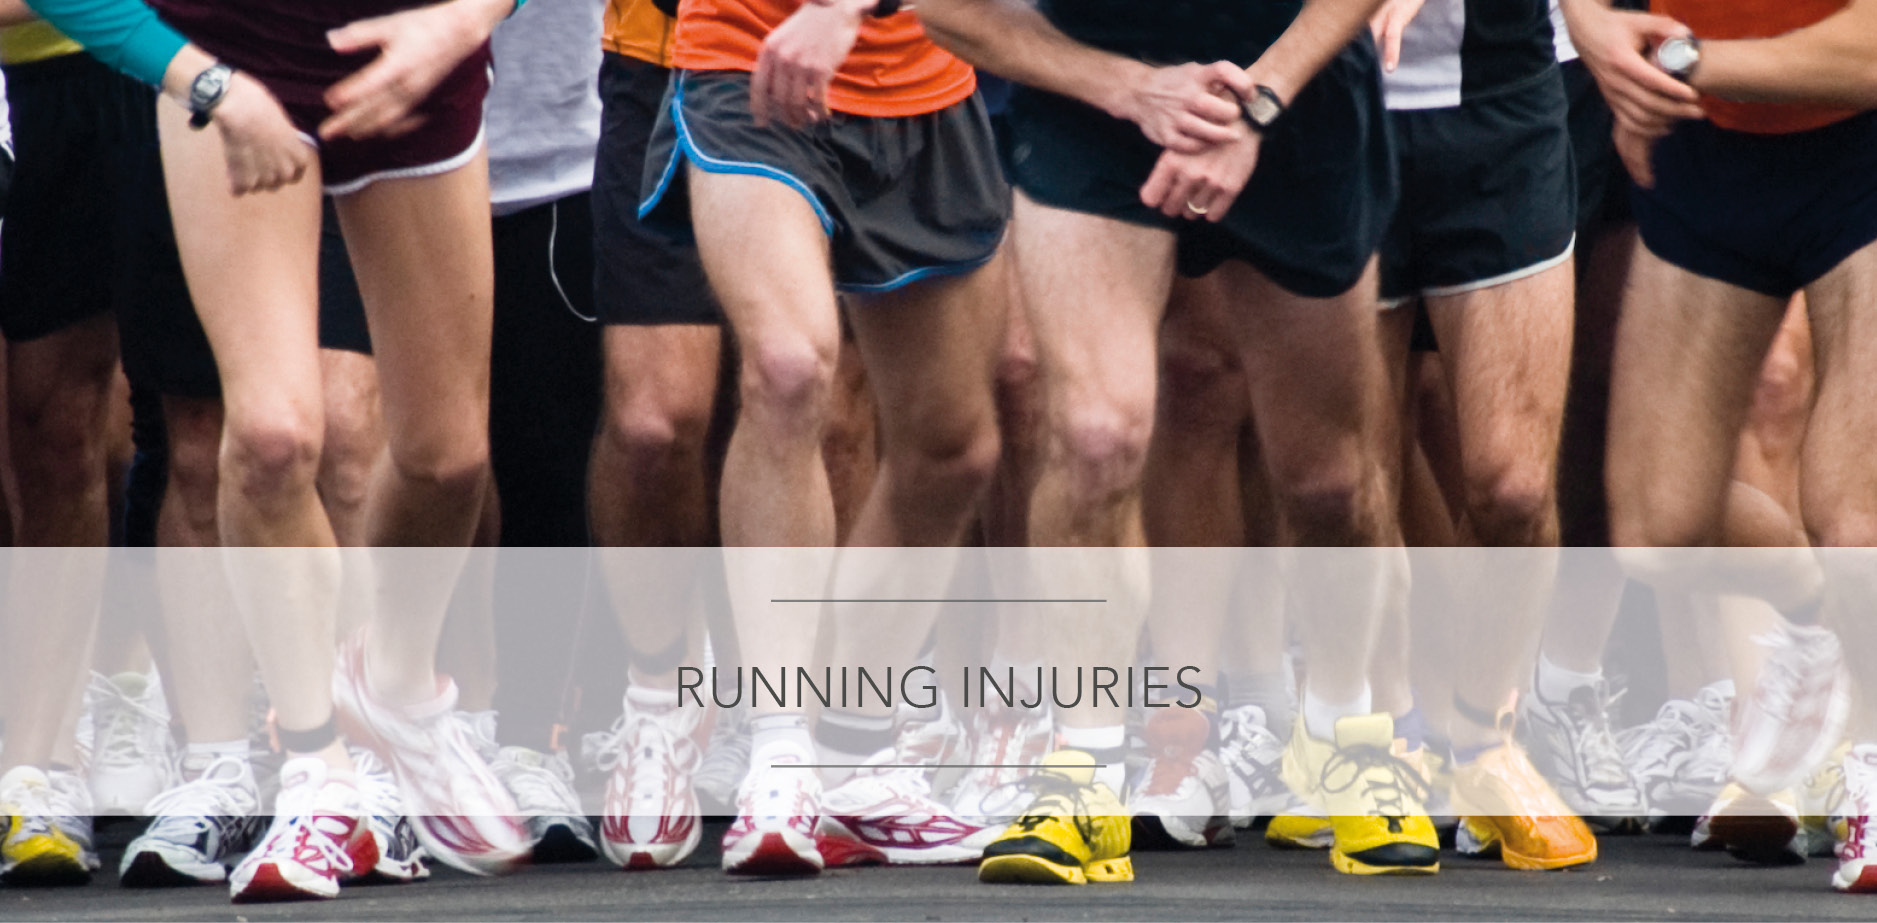 Running-related injuries at The Putney Clinic of Physical Therapy